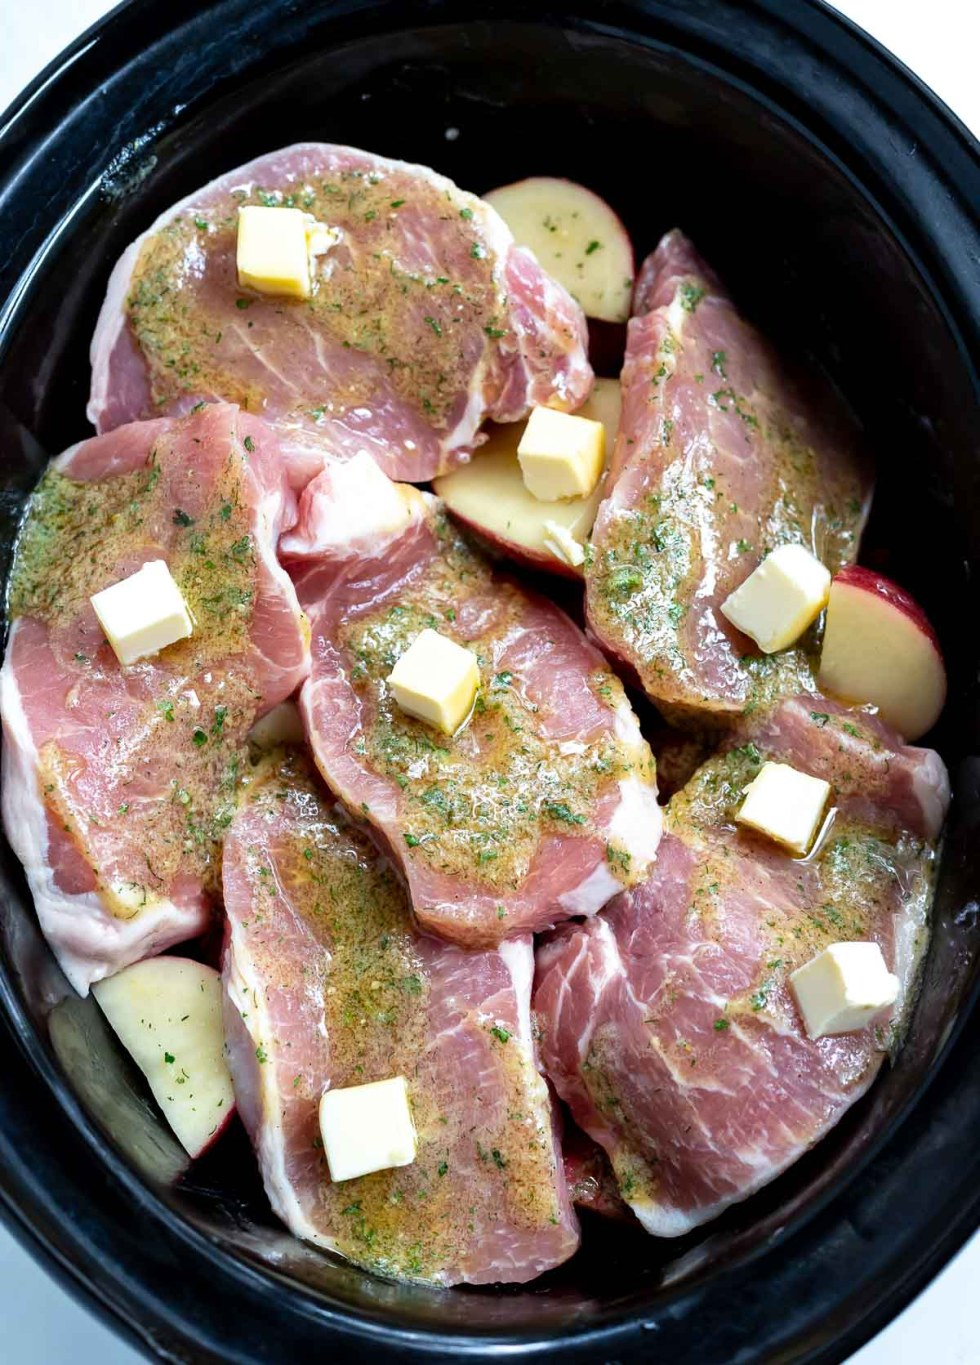 raw pork chops, ranch season and butter in slow cooker